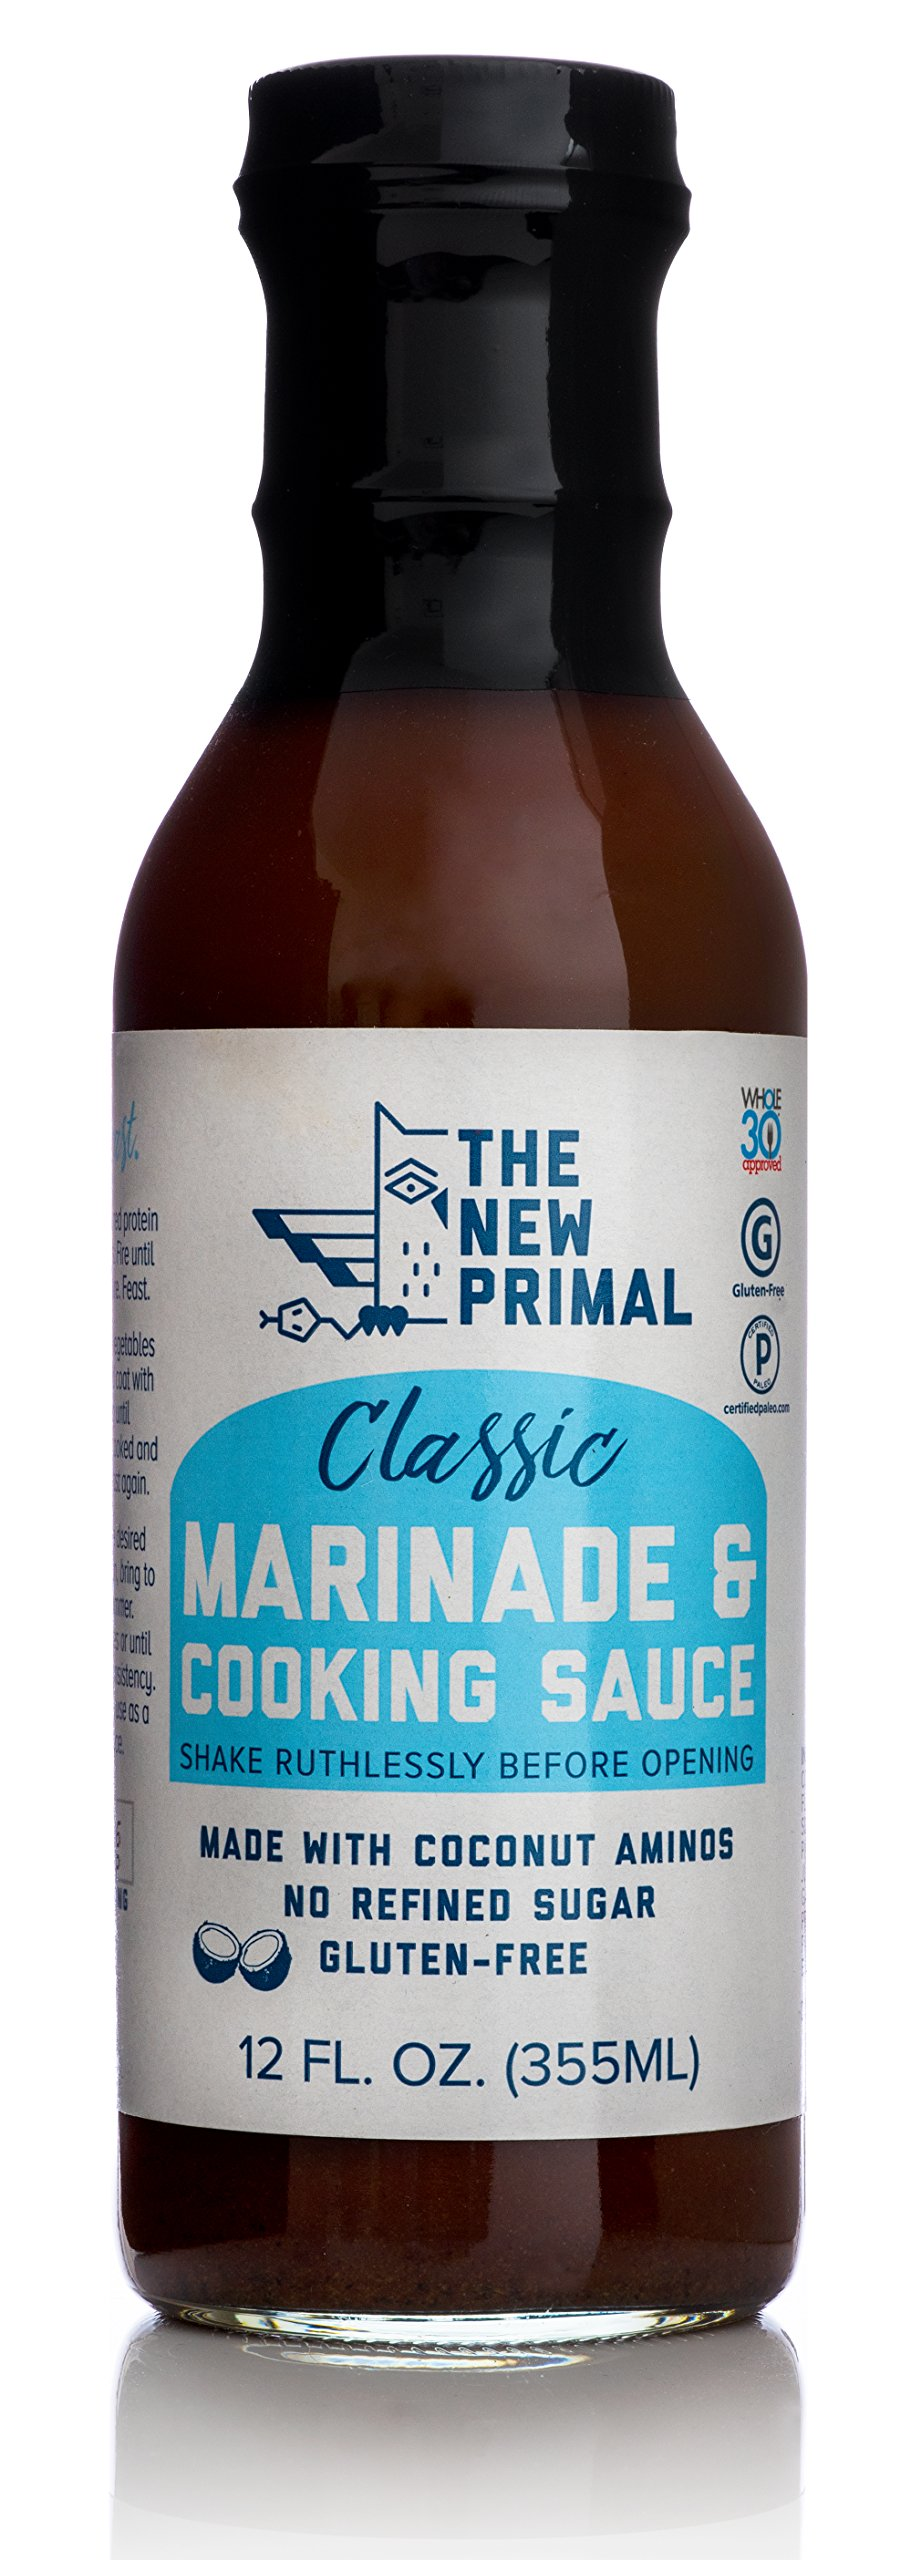 The New Primal Classic Marinade & Cooking Sauce, Whole30 Approved, Certified Paleo, Certified Gluten-Free, No Refined Sugar, 12oz